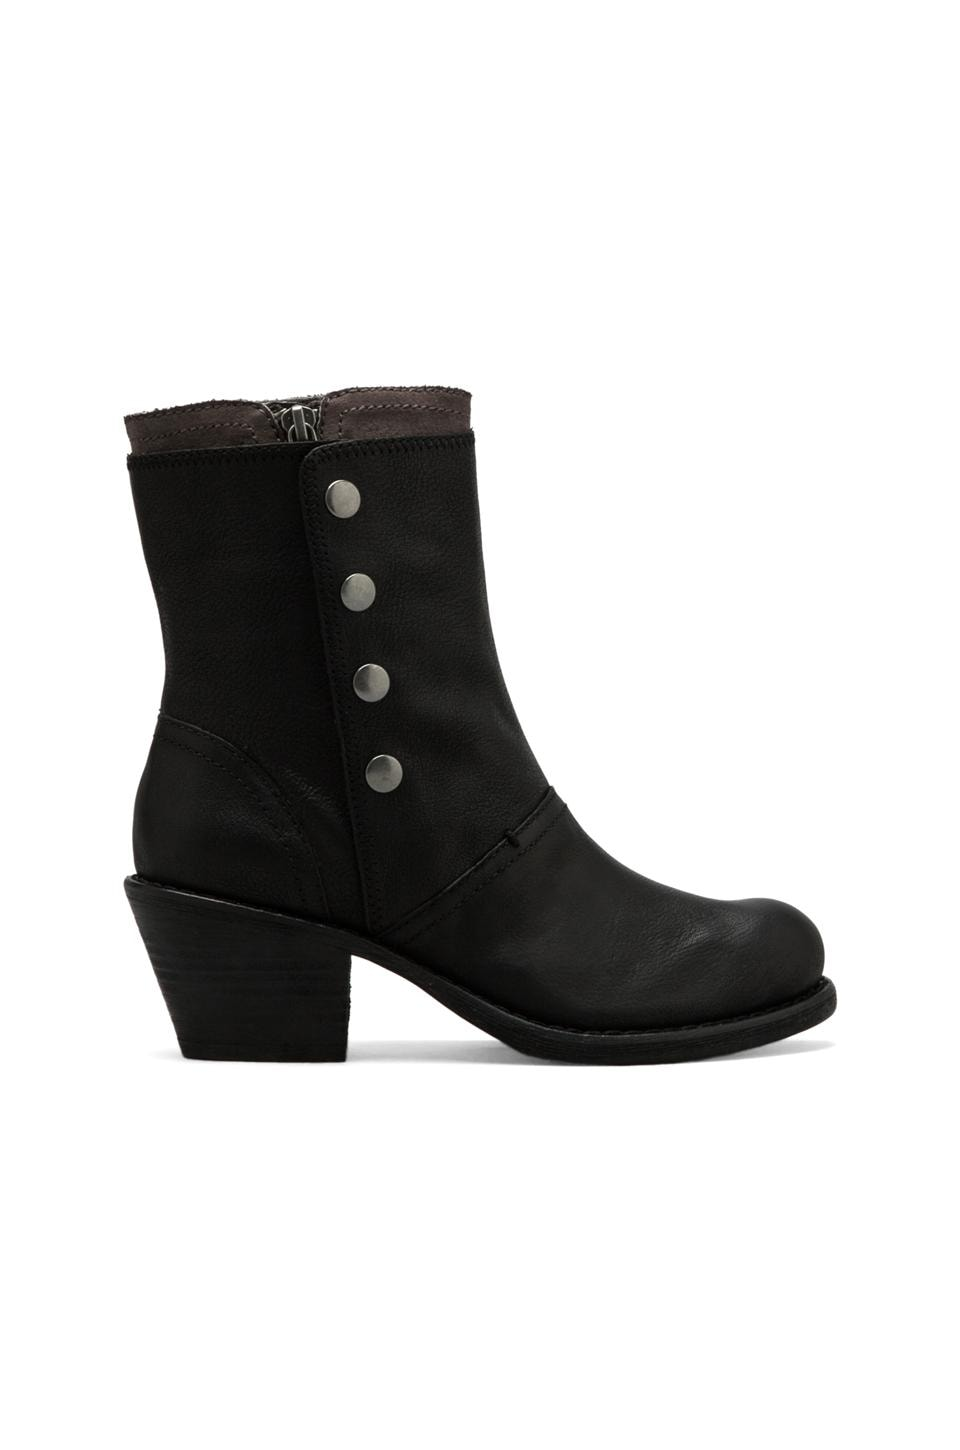 Luxury Rebel Beck Bootie in Black